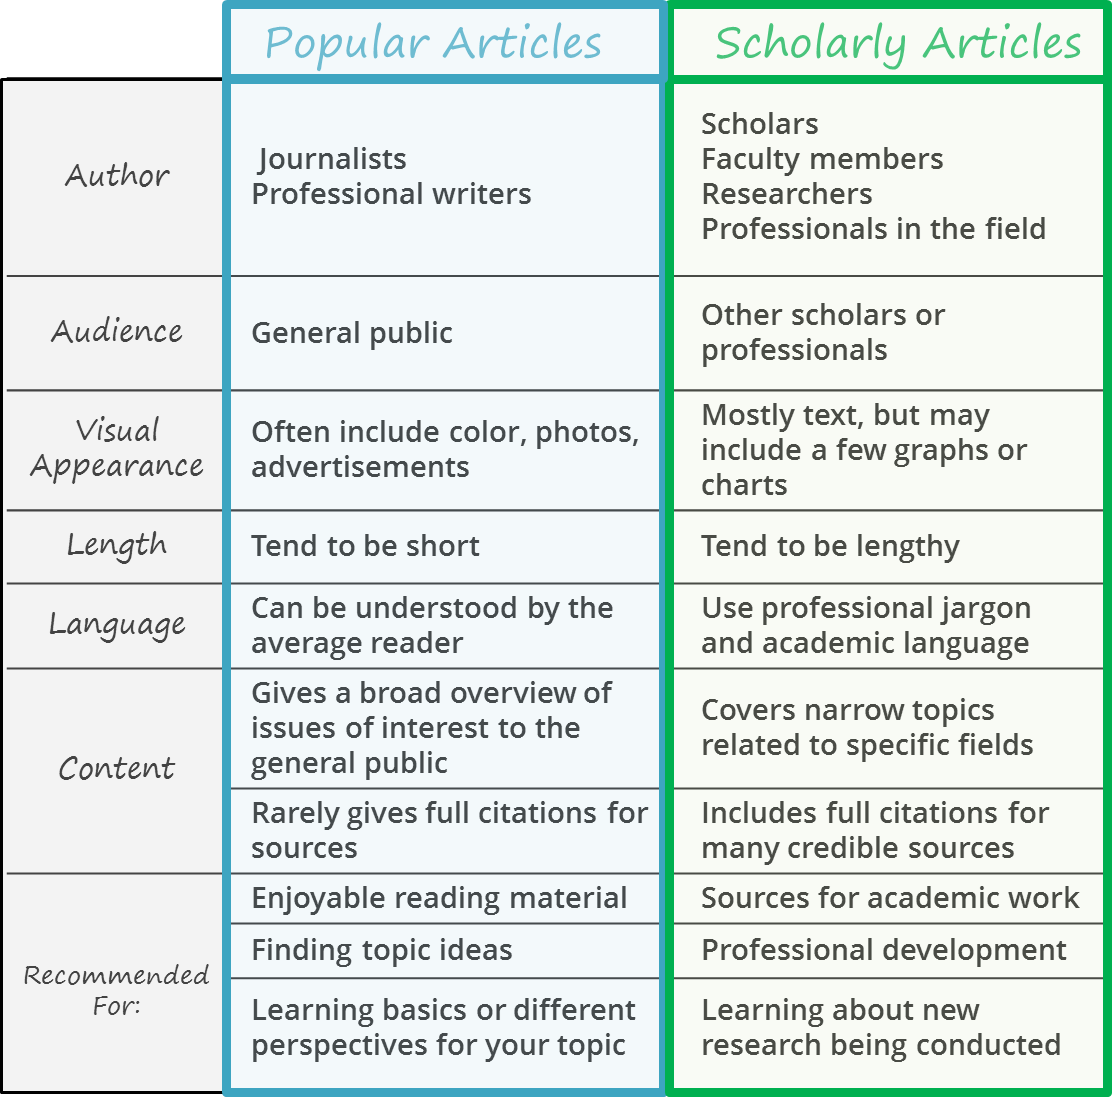 Chart details popular and scholarly article differences. For popular articles, journalists or professional writers are the authors. They are written for the general public and often include color, photos, and advertisements. They tend to be short and are written so the average reader can understand them. They give broad overviews of issues that the public cares about, and they rarely cite their sources. They are recommended for general reading, finding topic ideas, and learning basics or perspectives for your topic. Scholarly articles are written by scholars, faculty members, researchers, or professionals in the field. They are written for other scholars or professionals, so they use a lot of technical jargon and academic language. They are mostly text with perhaps a few charts or graphs. They tend to be lengthy and cover narrow topics related to specific fields. They include full citations for many credible sources. Scholarly articles are recommended as sources for academic work or professional development. They also help you learn about new research being conducted in a given field of study.